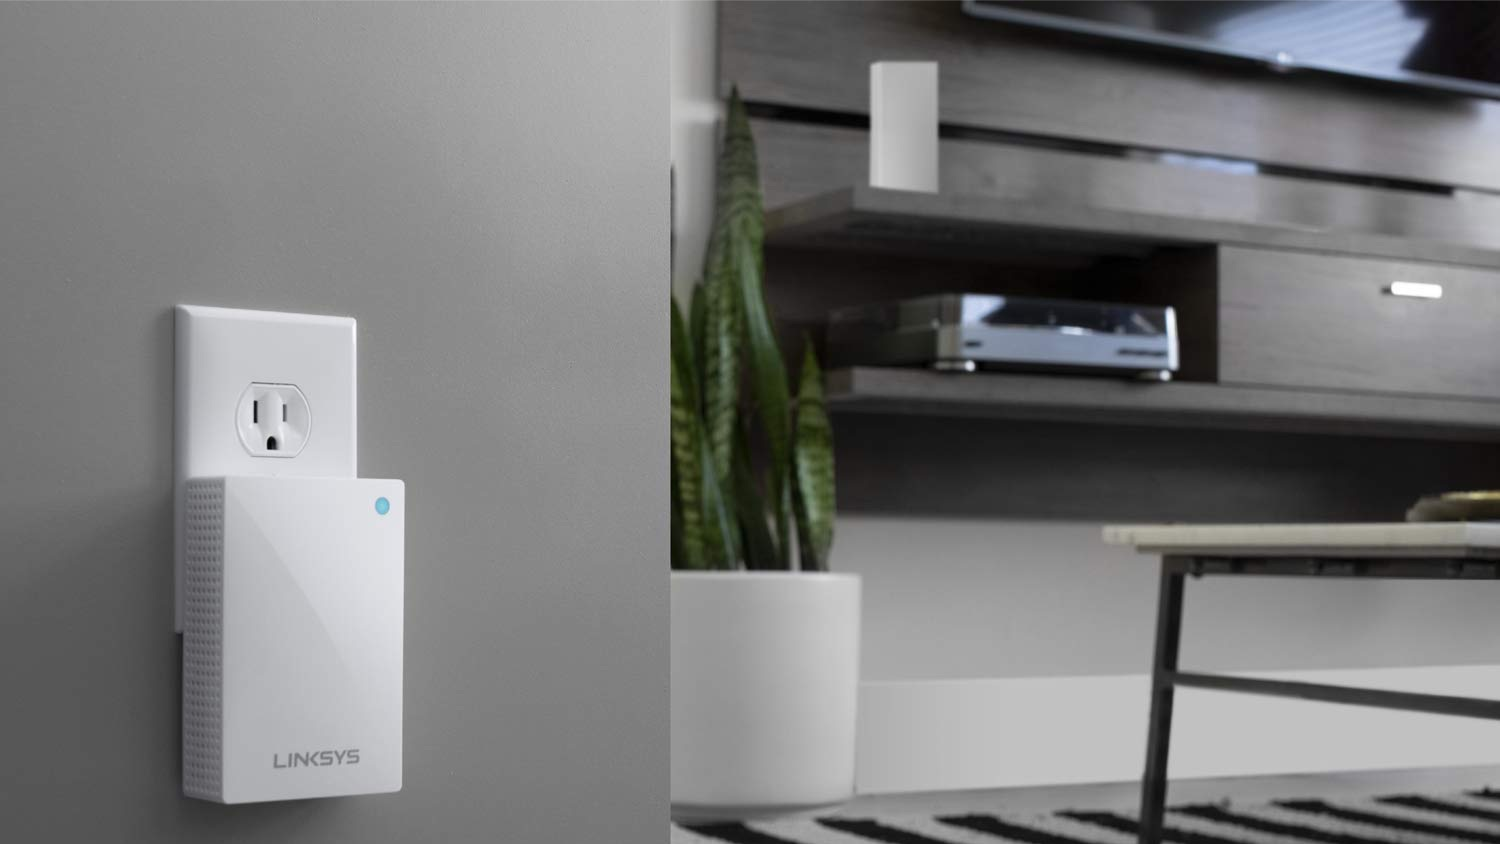 Linksys expands Velop mesh Wi-Fi system with wall plug-in